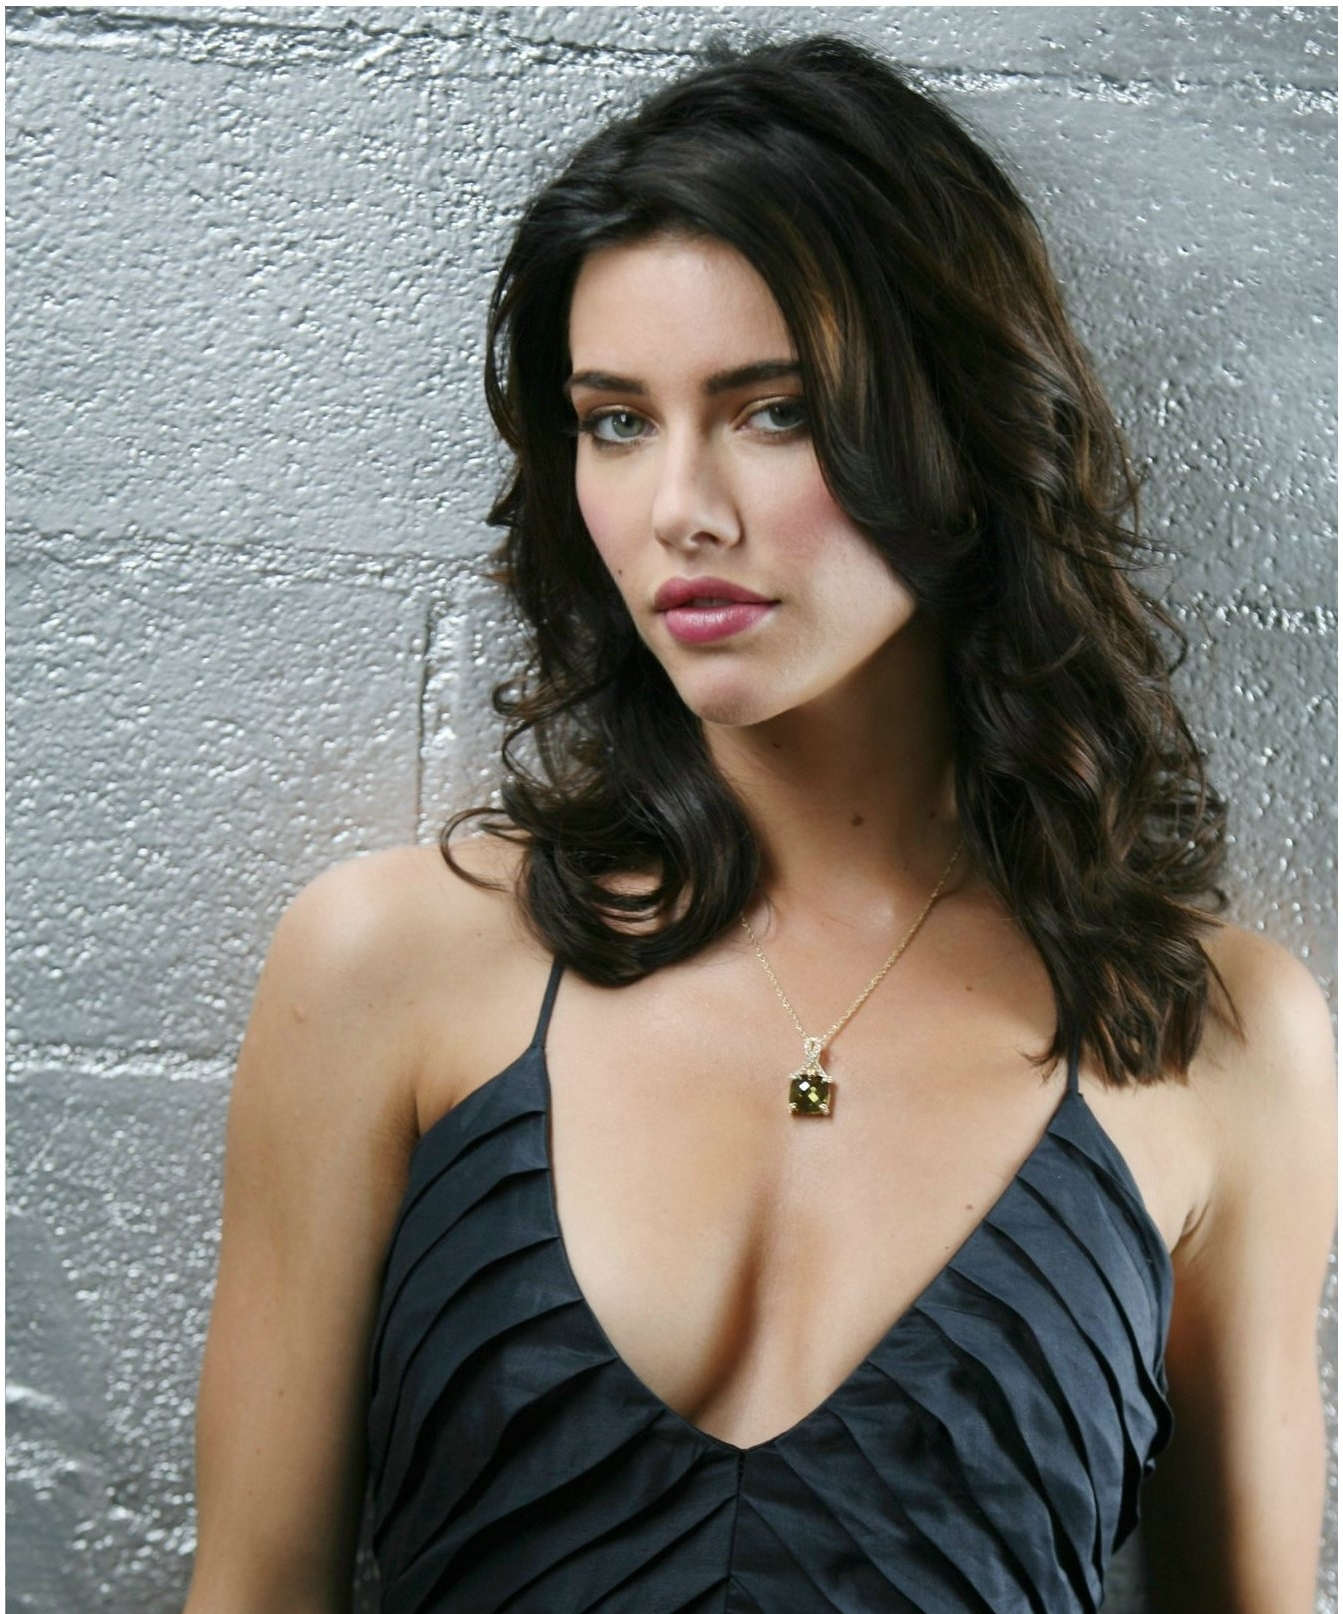 Fotos Jacqueline MacInnes nudes (81 photo), Sexy, Bikini, Boobs, swimsuit 2015